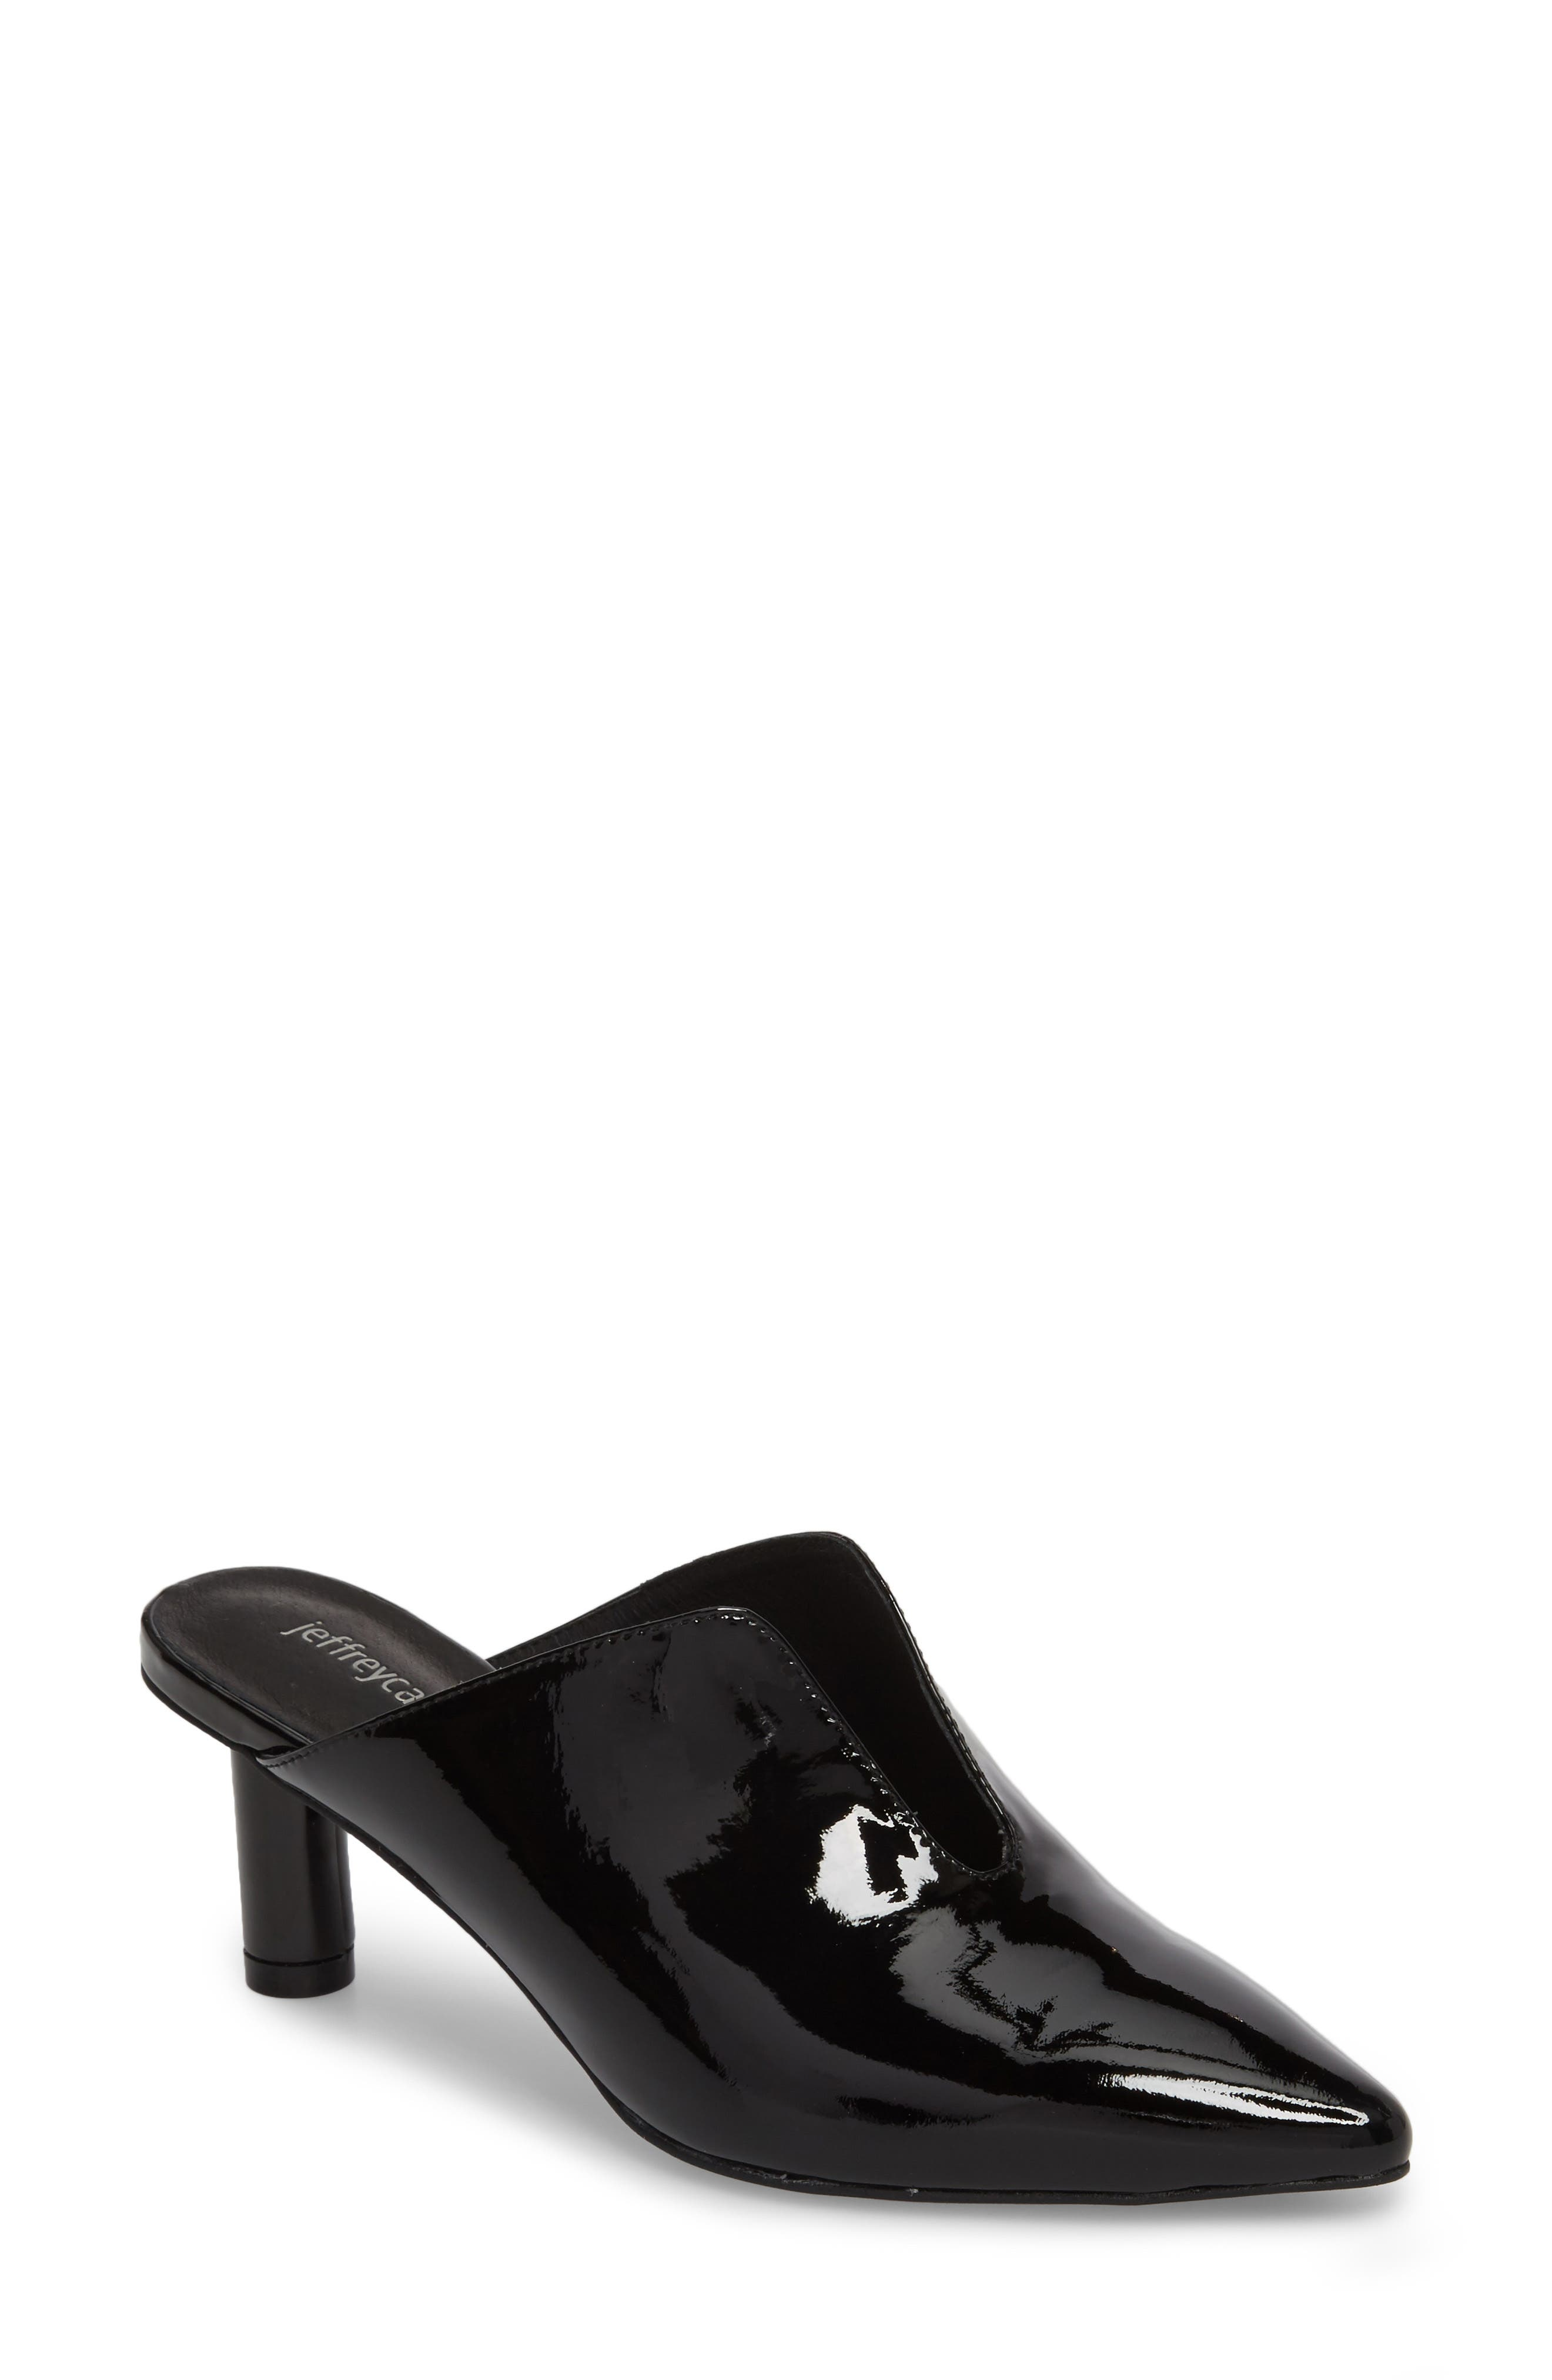 Saltaire Pointy Toe Mule,                             Main thumbnail 1, color,                             BLACK PATENT LEATHER